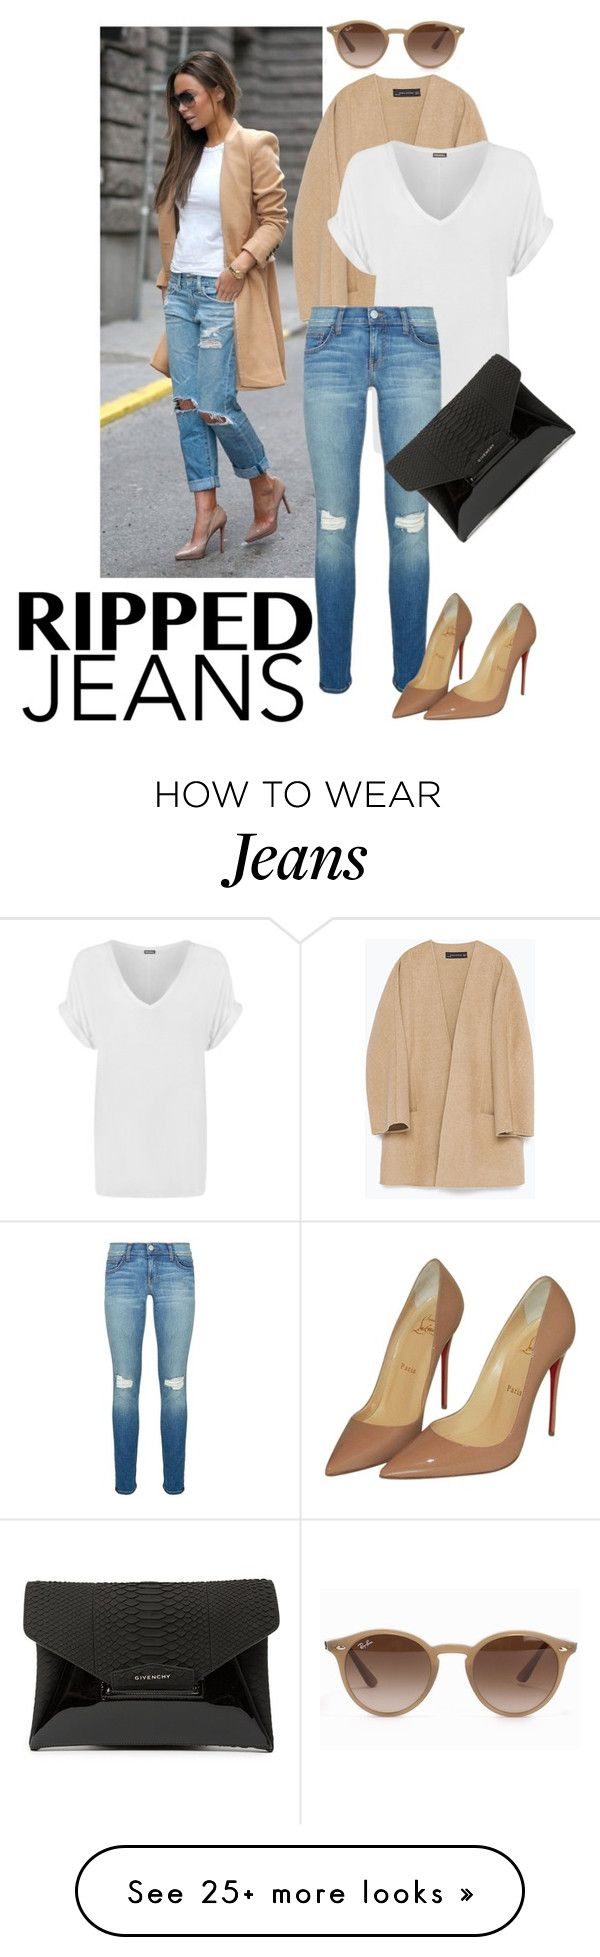 """photograph"" by deva-1998 on Polyvore featuring Zara, WearAll, Rebecca Minkoff, Christian Louboutin, Givenchy, Ray-Ban, StreetStyle, rippedjeans and fashionblogger"